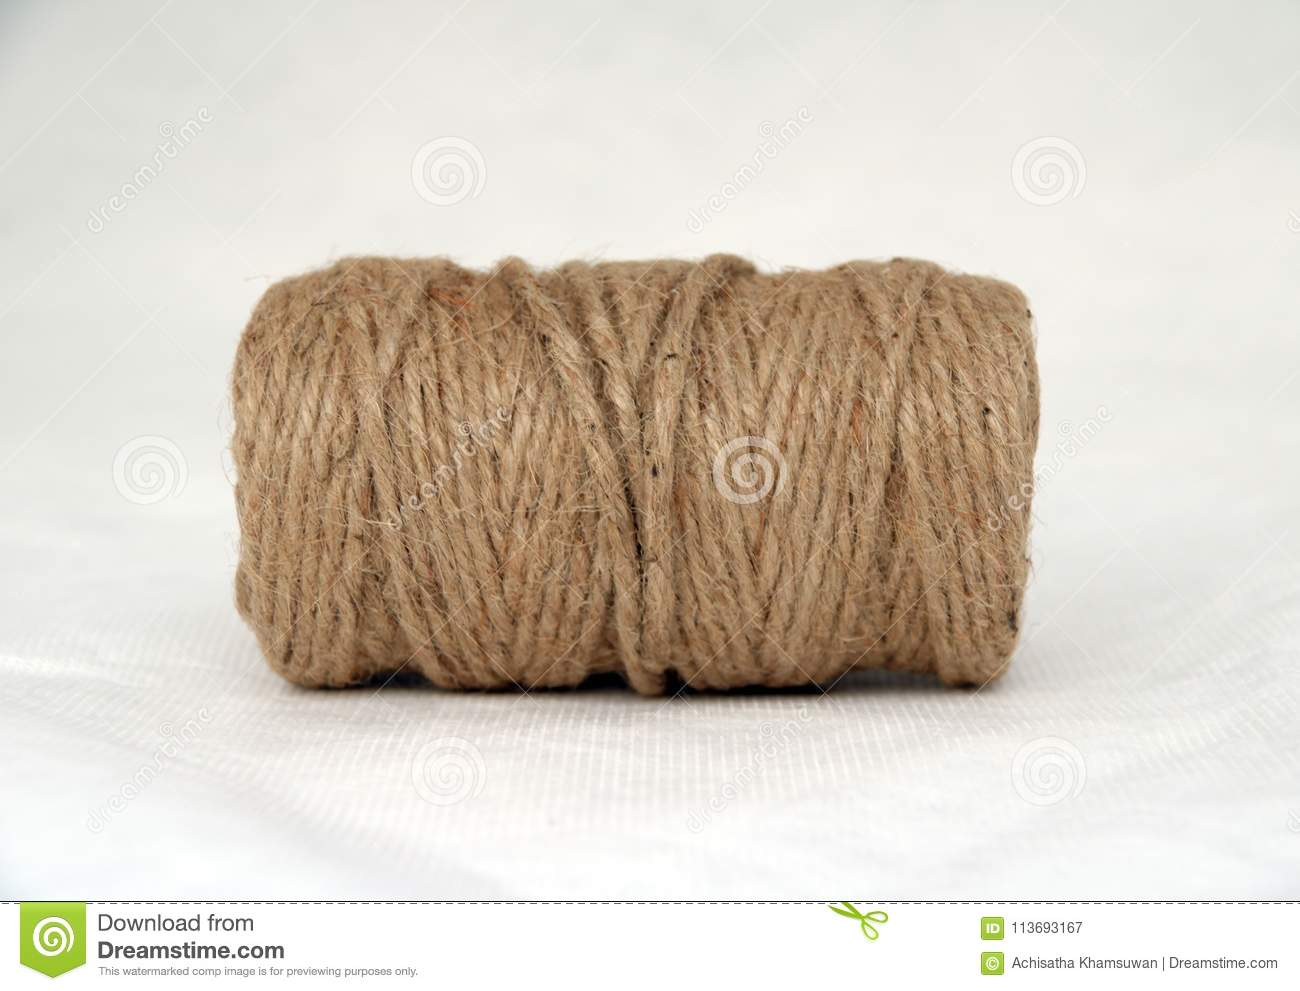 Skein of Rope jute on the white background.